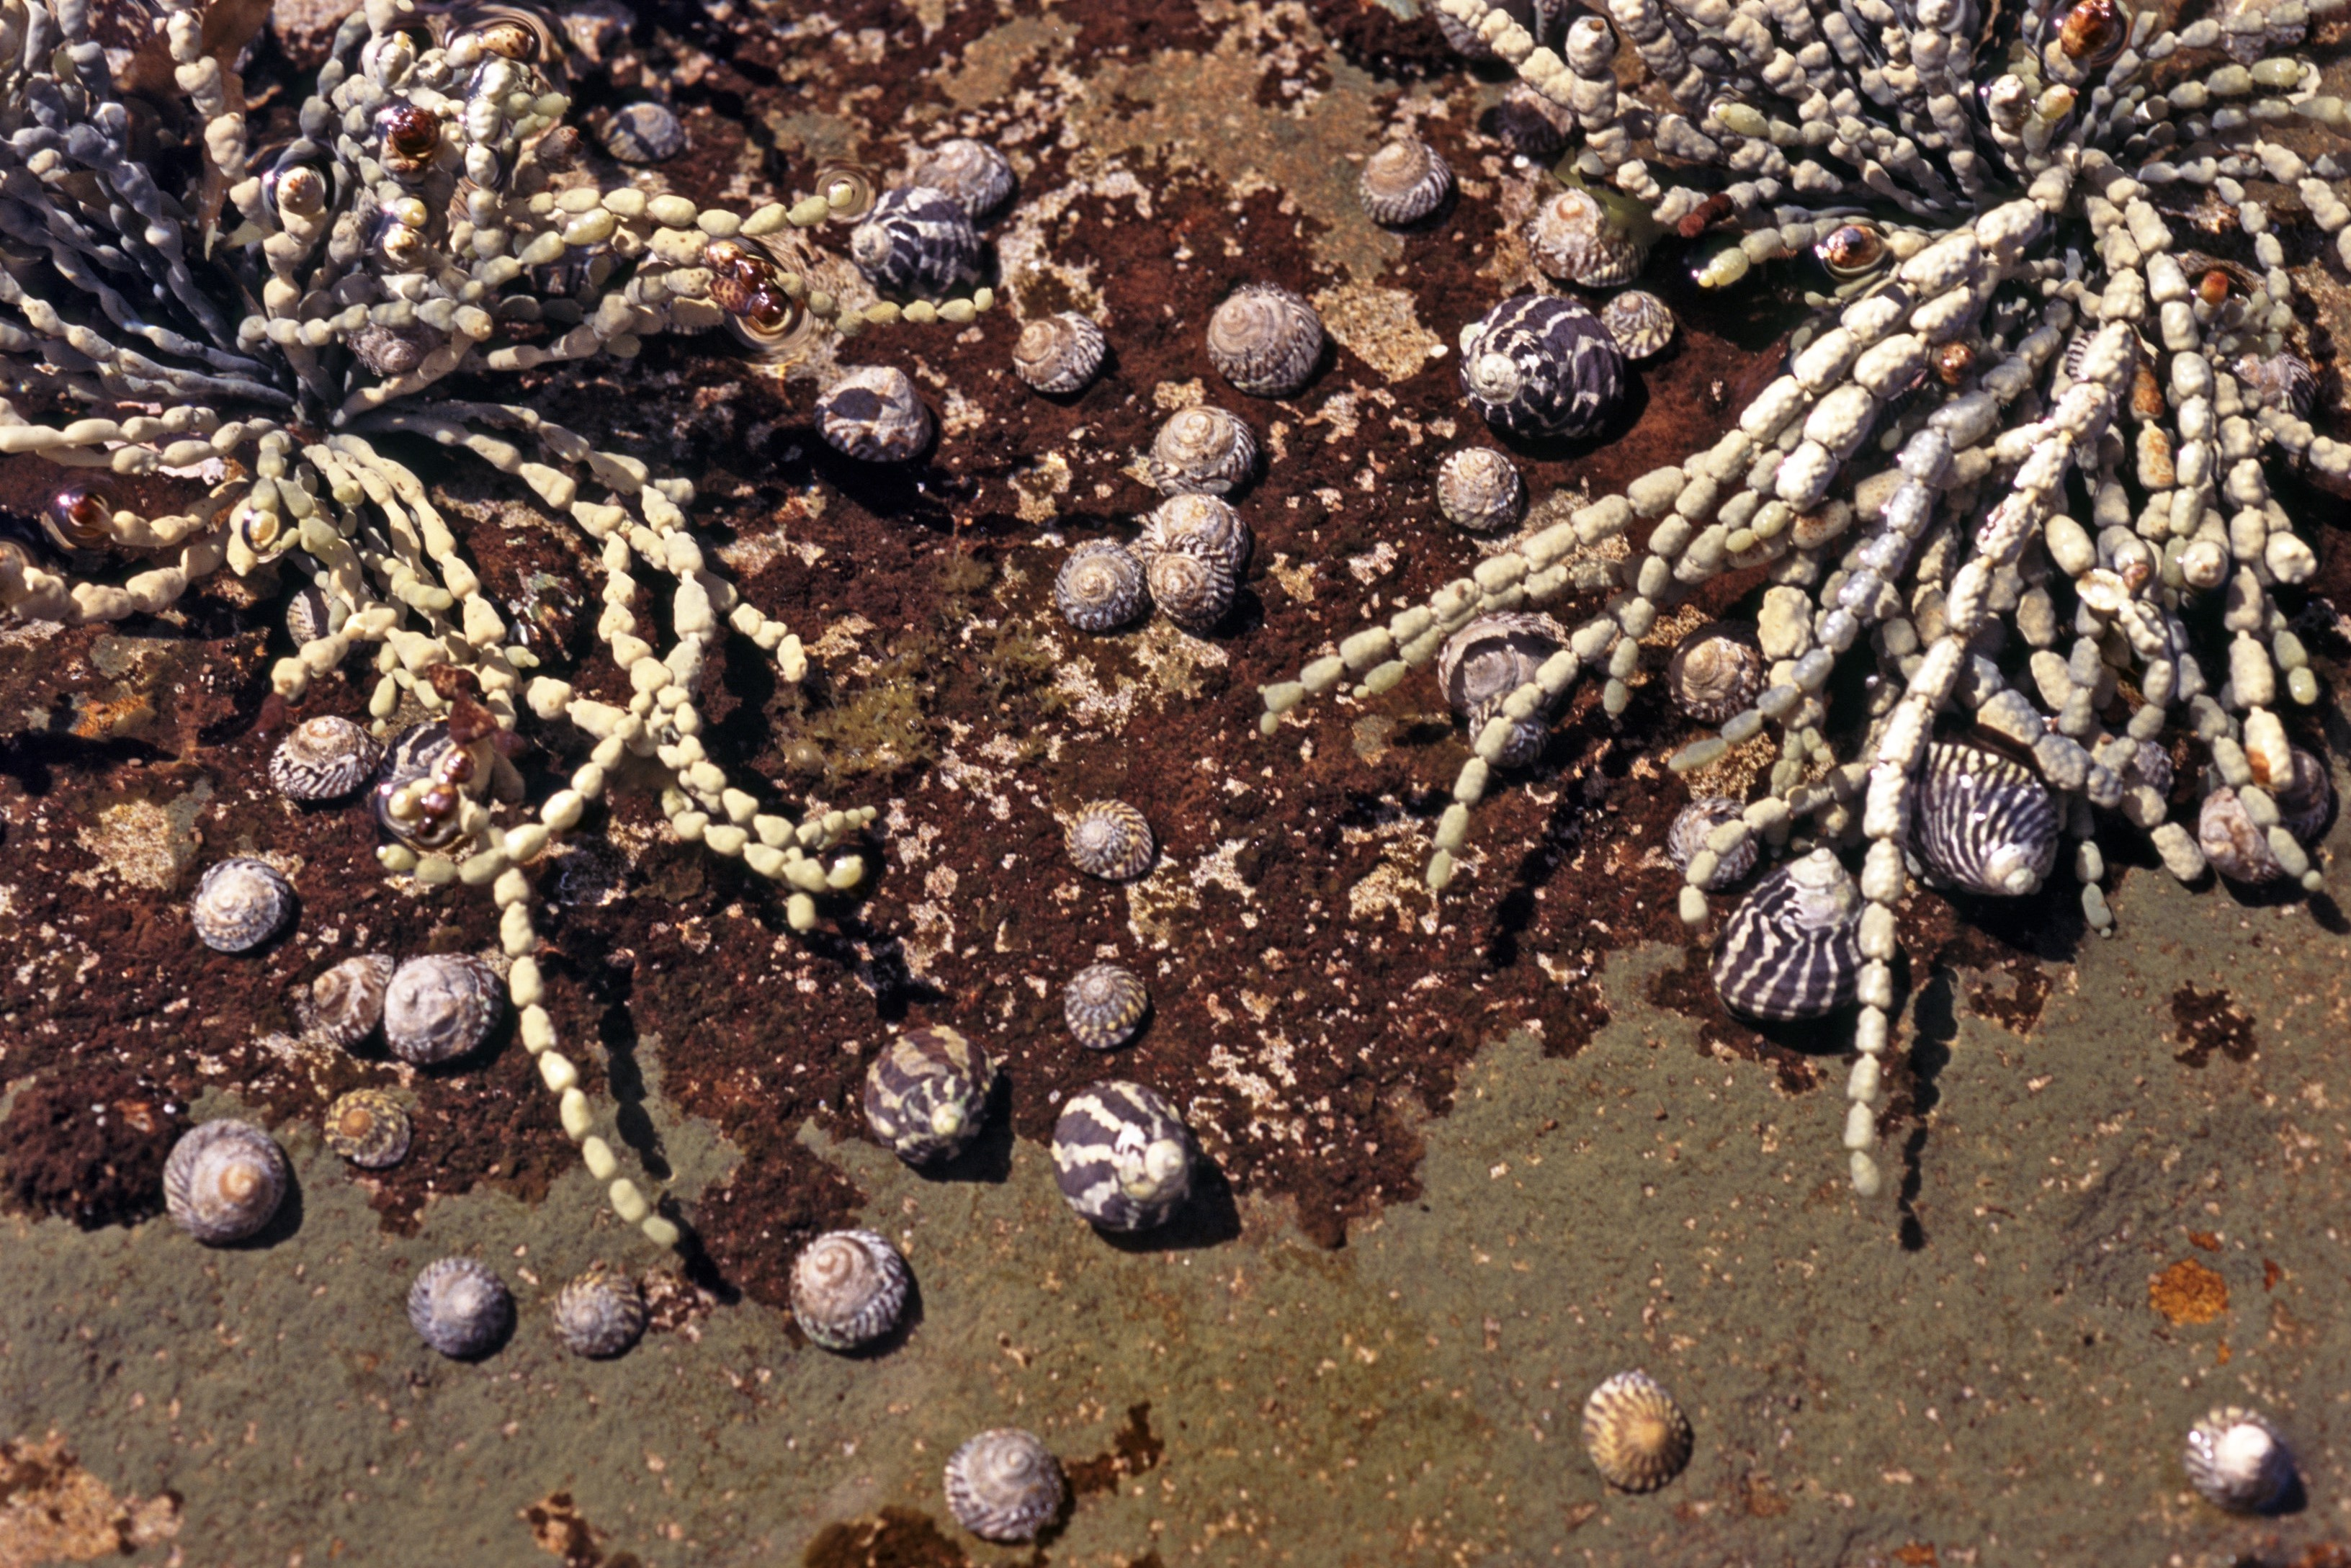 Rock pool plants with segmented seaweed and shells with hermit crabs and marine snails on a sandy bottom for an interesting nautical background